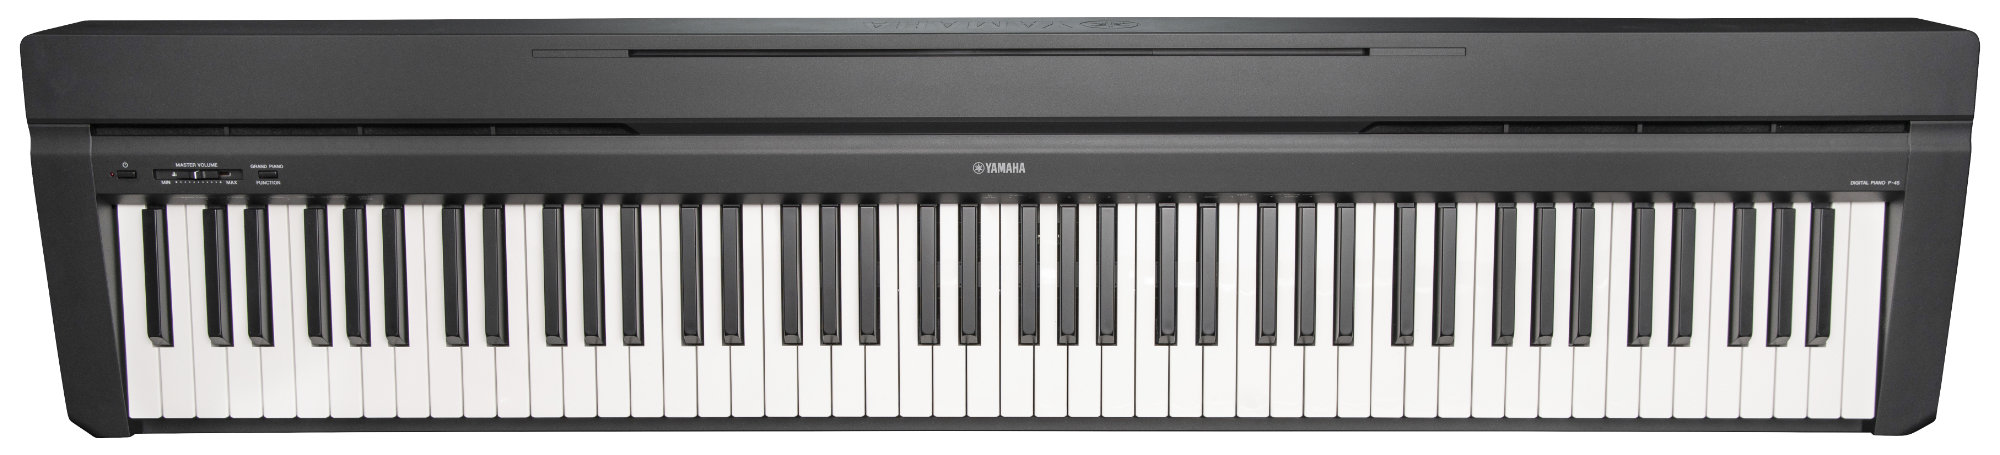 yamaha p 45b digitalpiano stagepiano. Black Bedroom Furniture Sets. Home Design Ideas